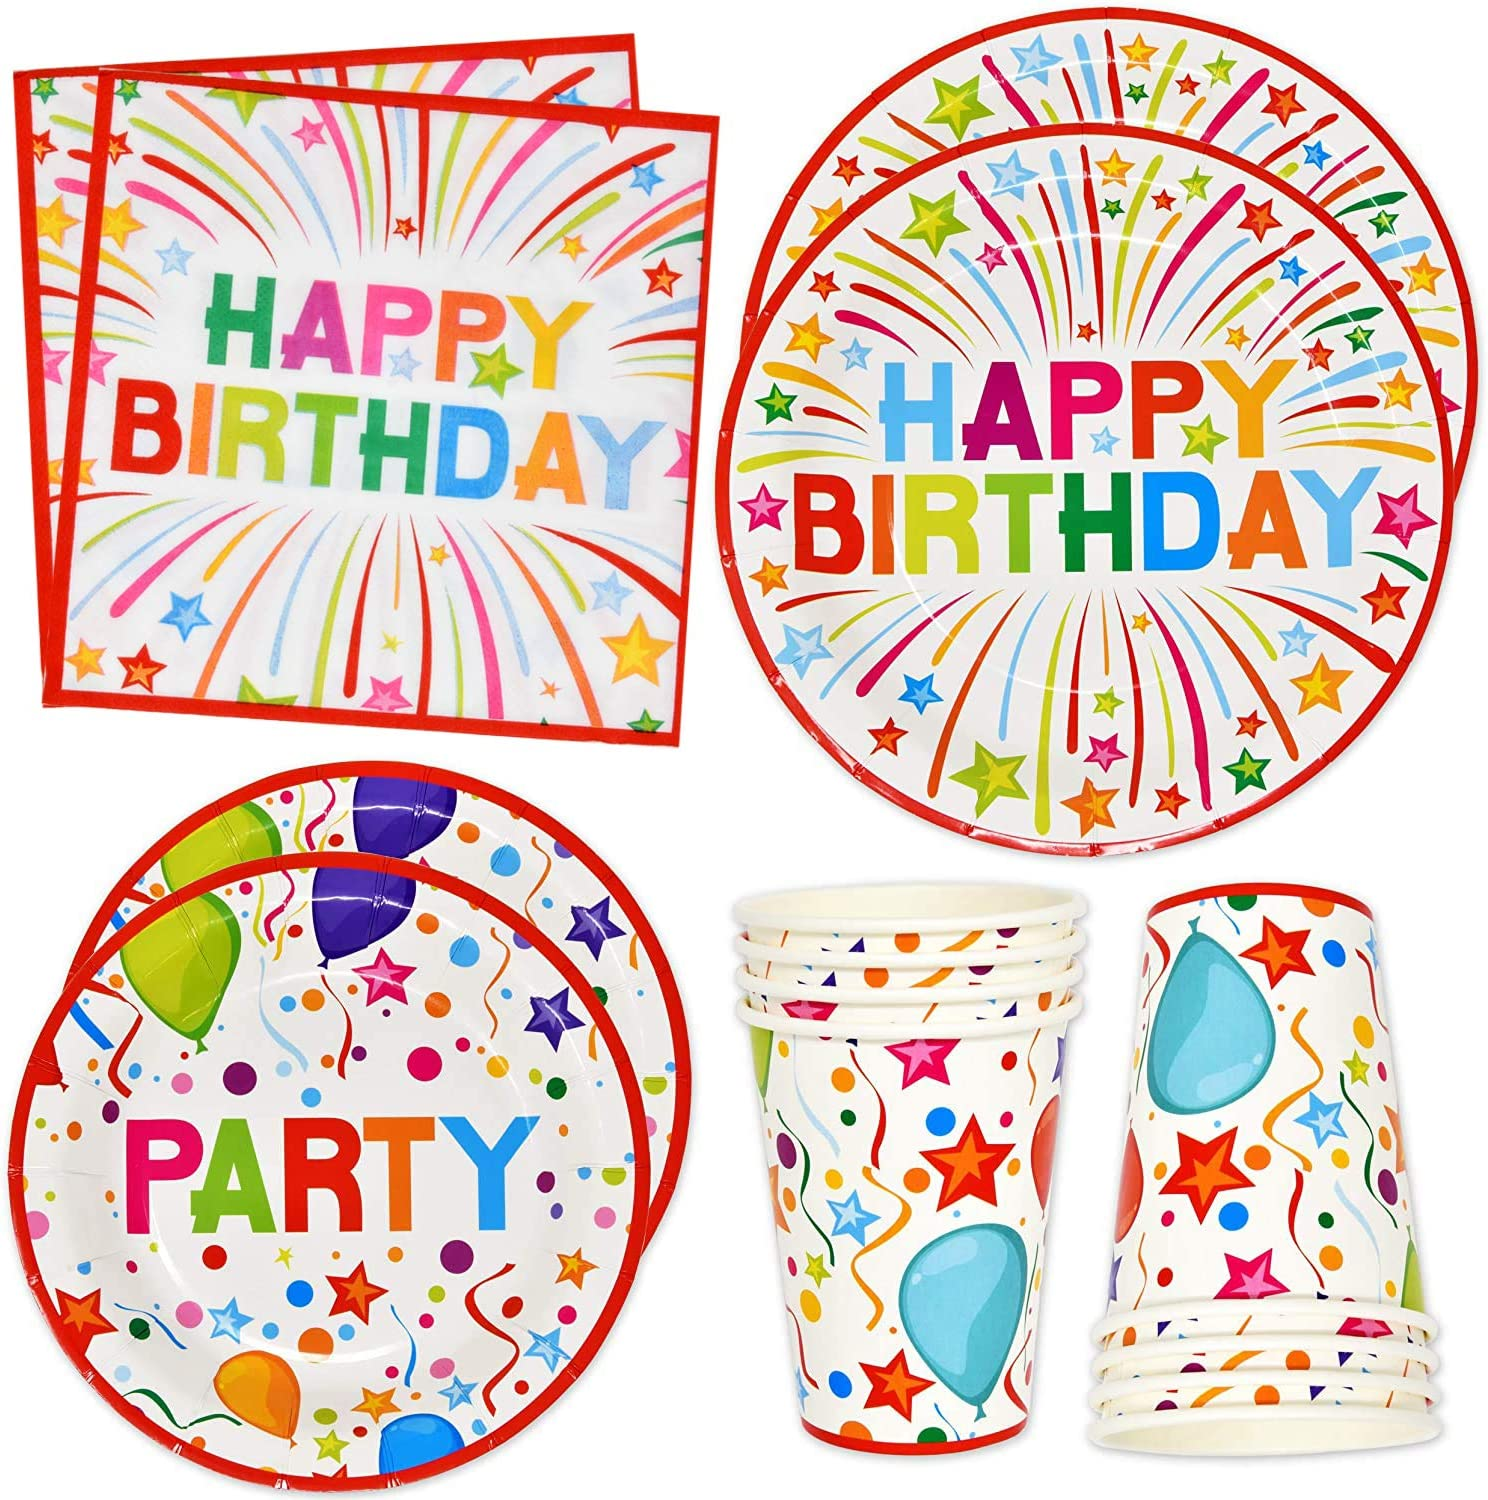 "Happy Birthday Party Supplies Tableware Set 24 9"" Plates 24 7"" Plate 24 9 Oz. Cups 50 Lunch Napkins for Adult Teens Kids Boys Girls Balloon Confetti Rainbow B-day Parties Disposable Paper Goods Decor"